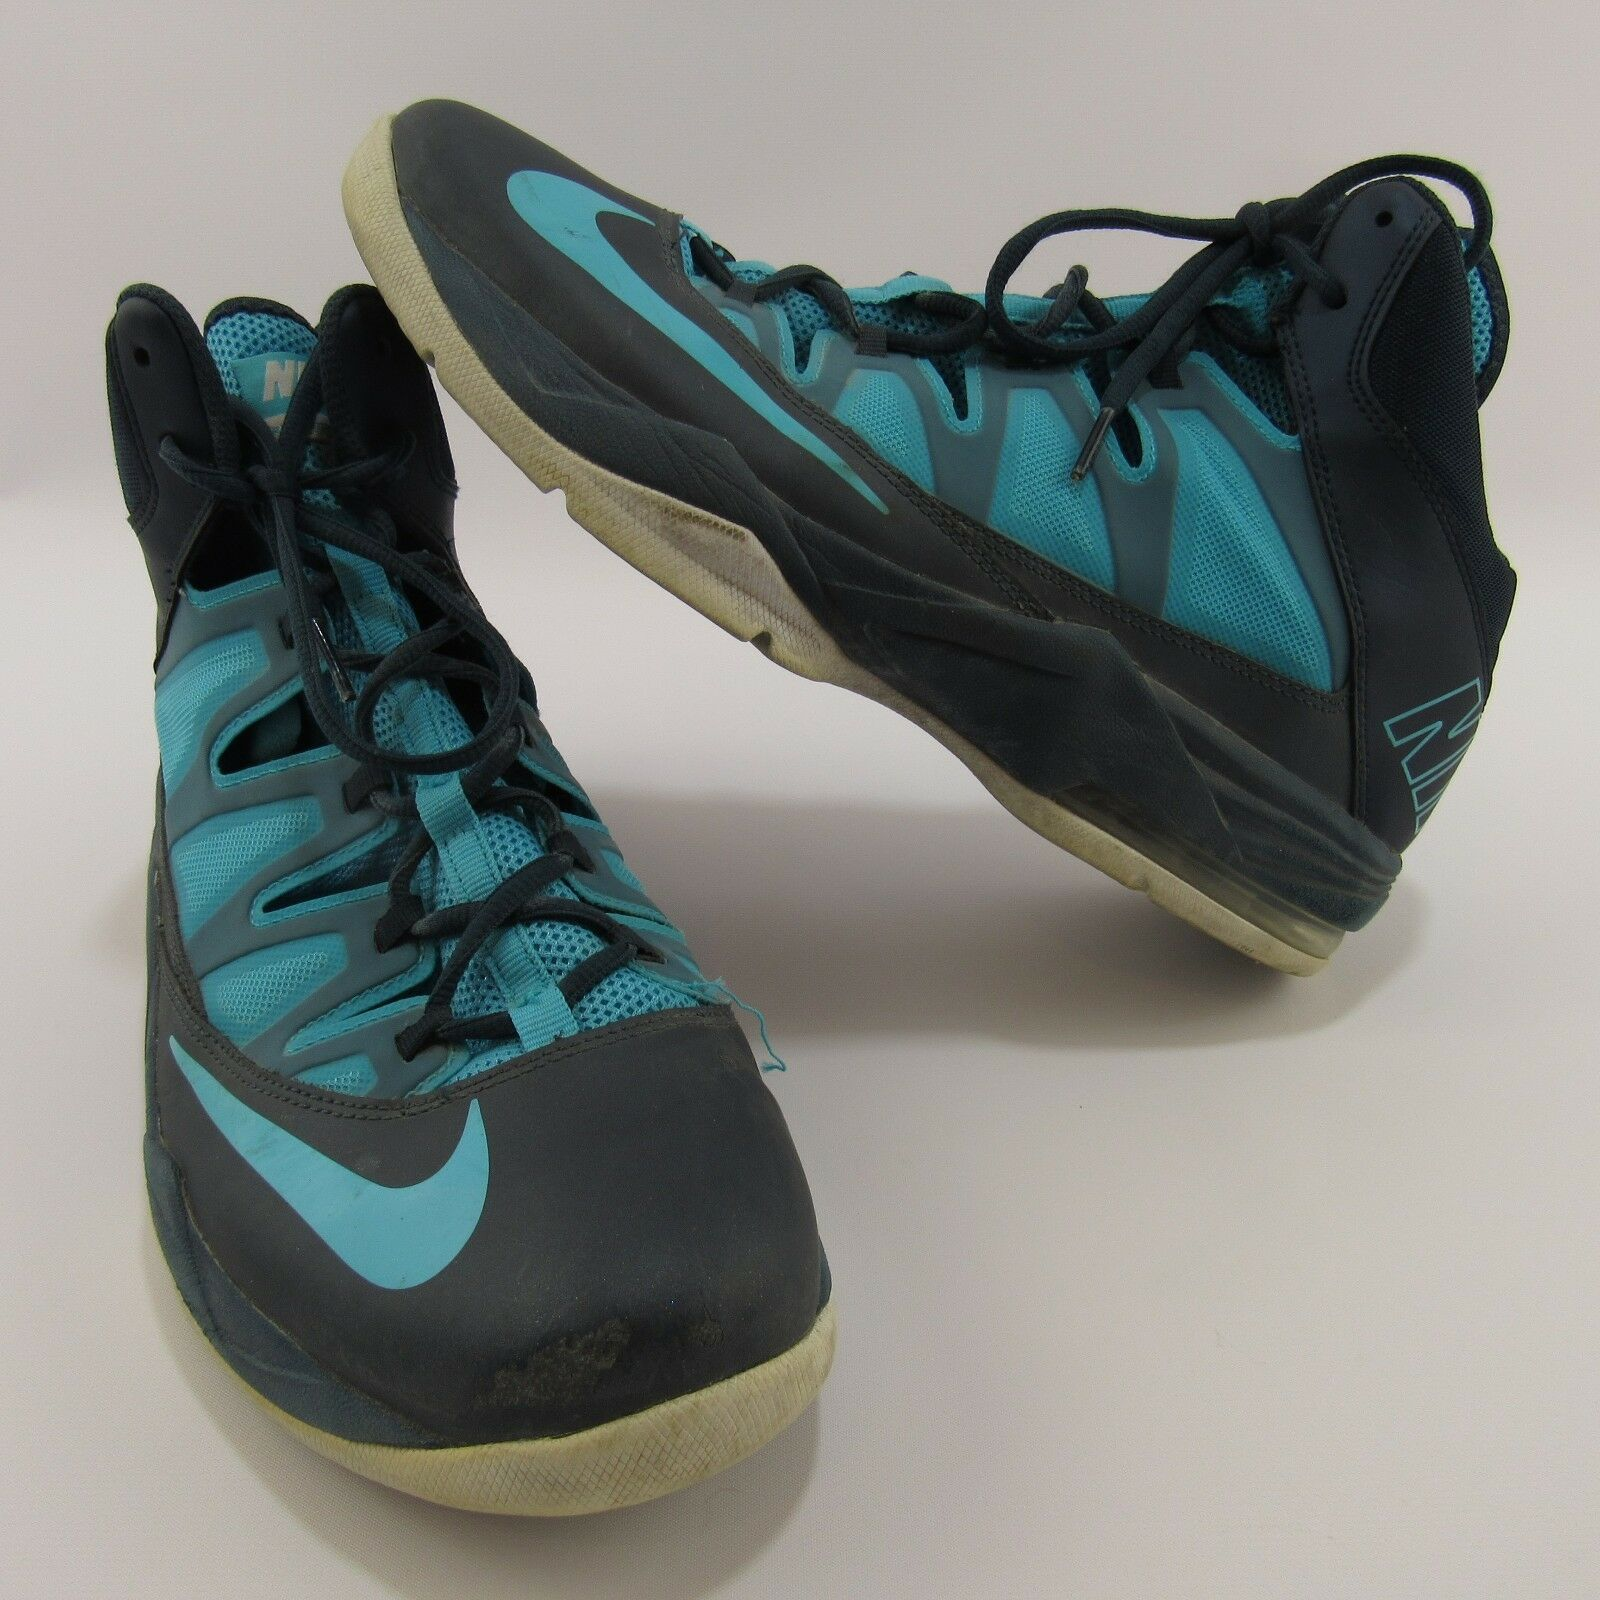 Nike Air Max Stutter Step Basketball Shoes Comfortable